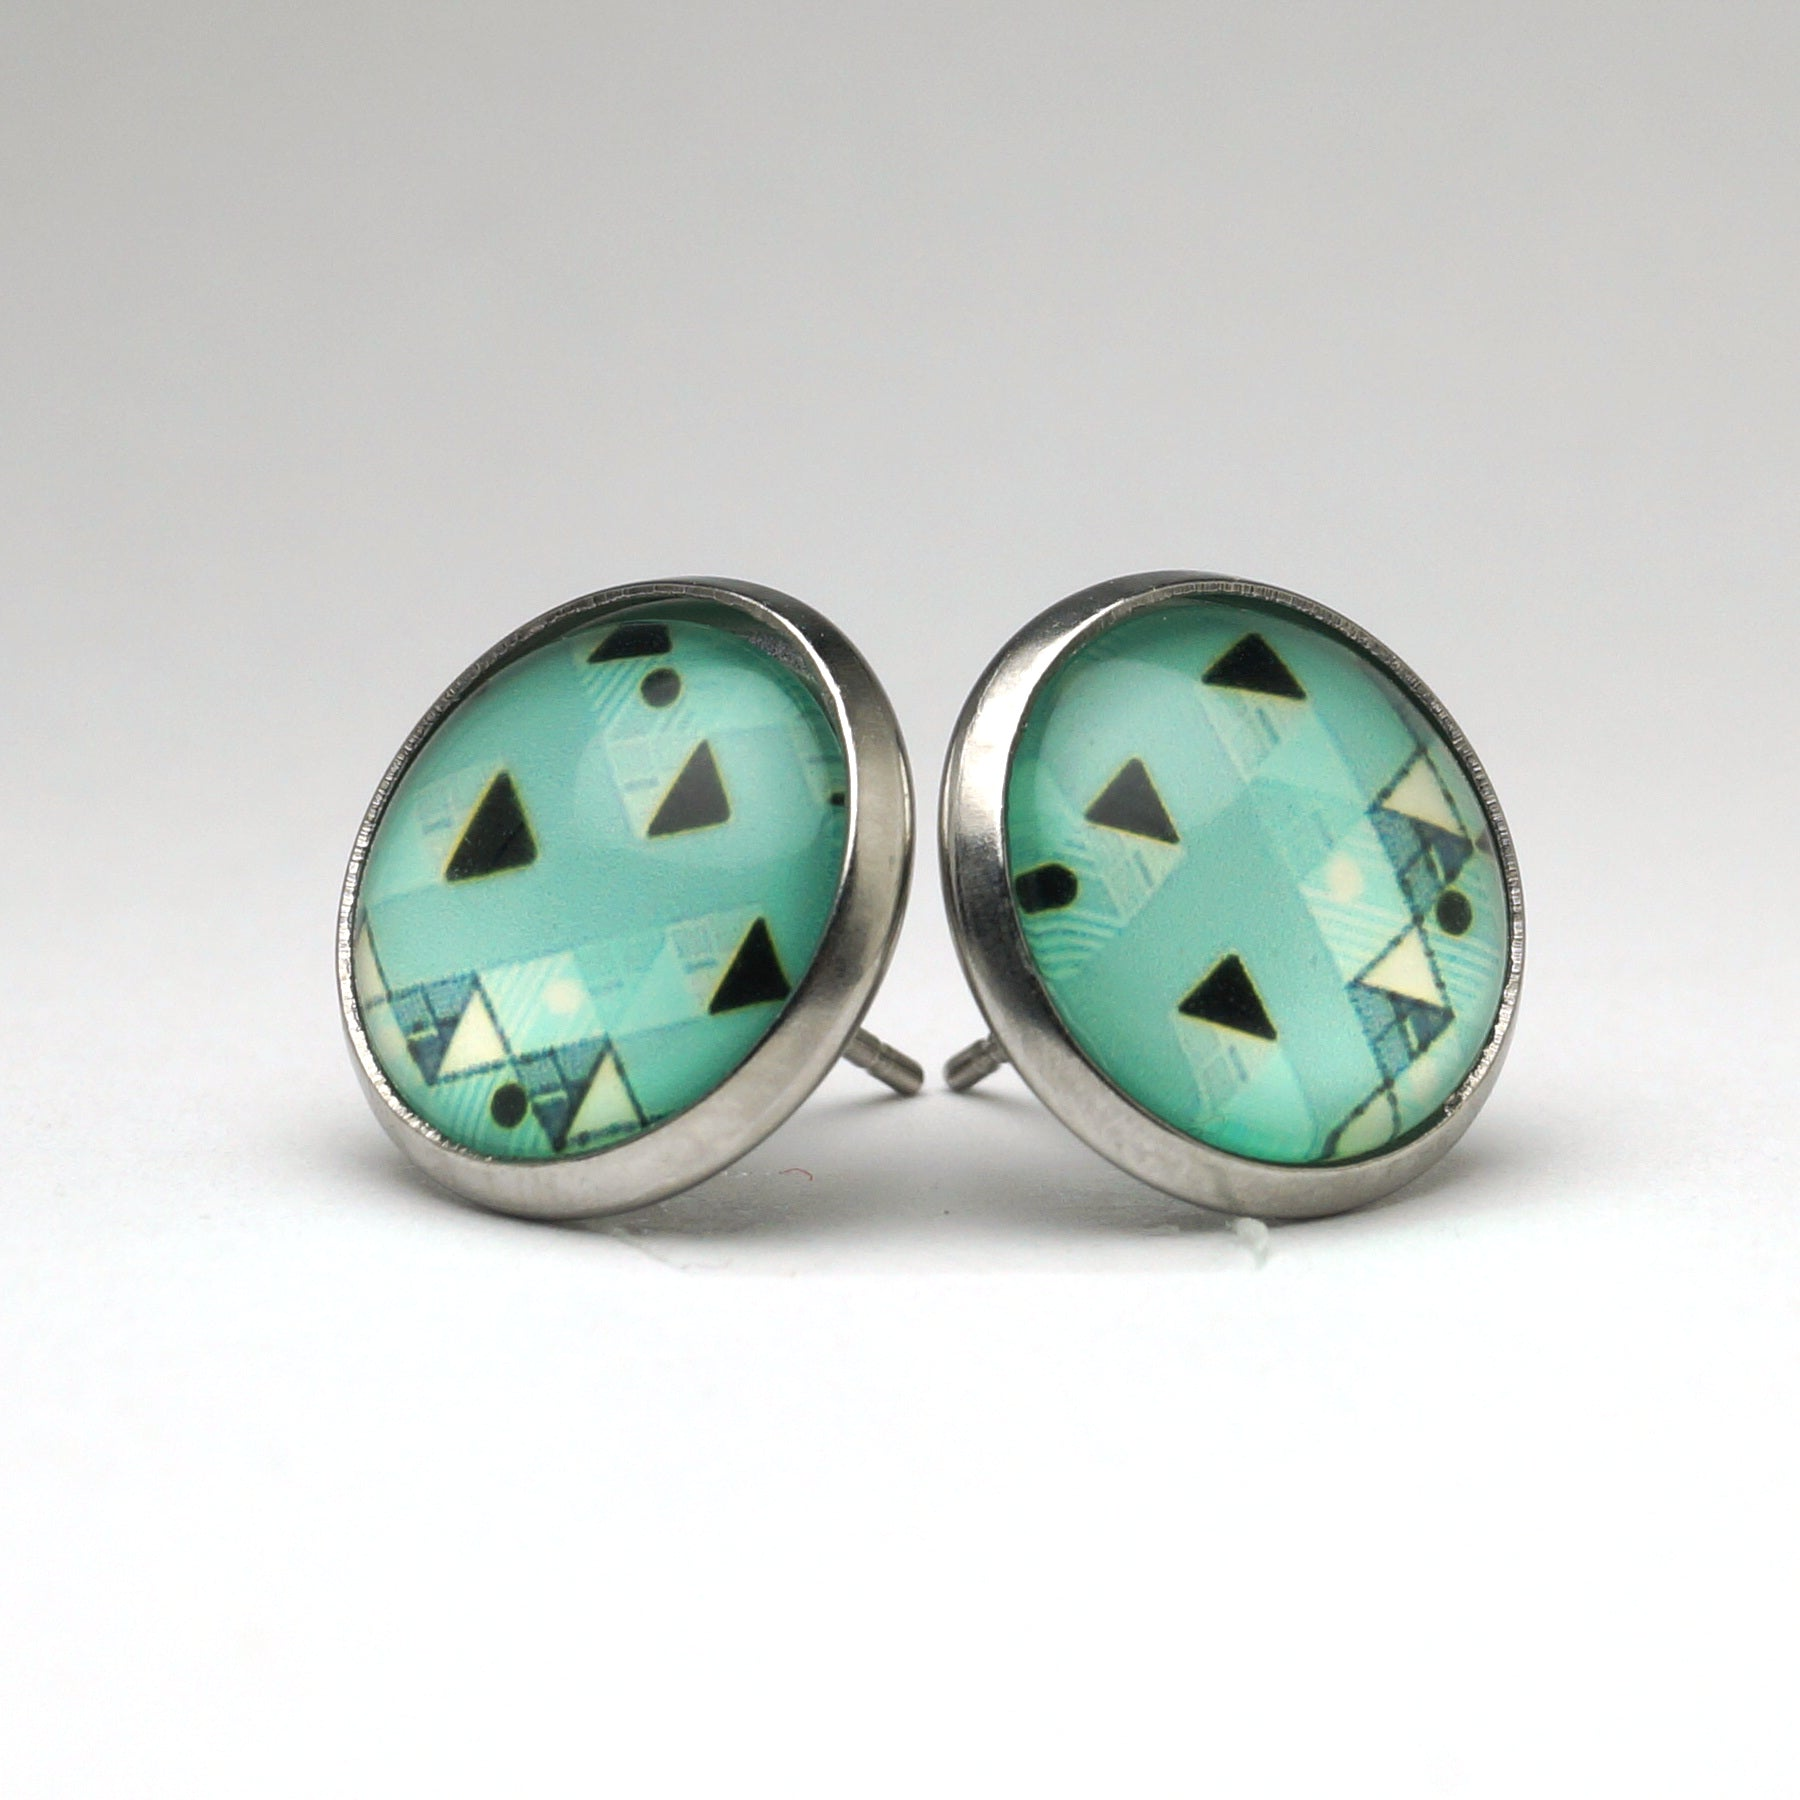 Pastel Green Geometric Stud Earrings (14mm)